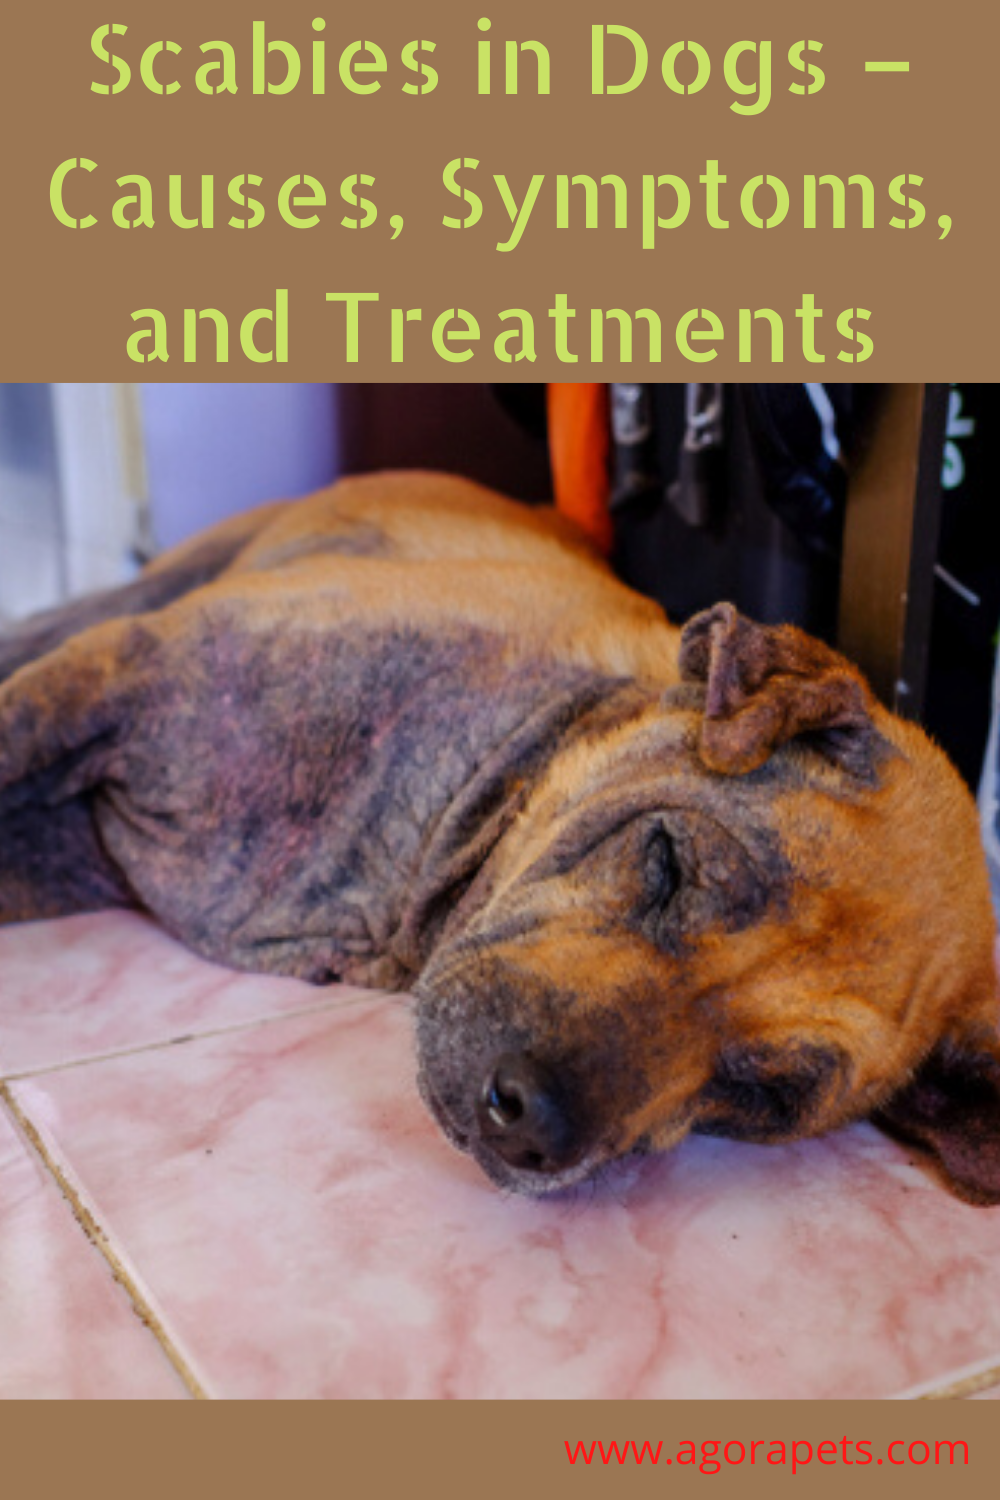 Scabies in Dogs Causes, Symptoms, and Treatments in 2020